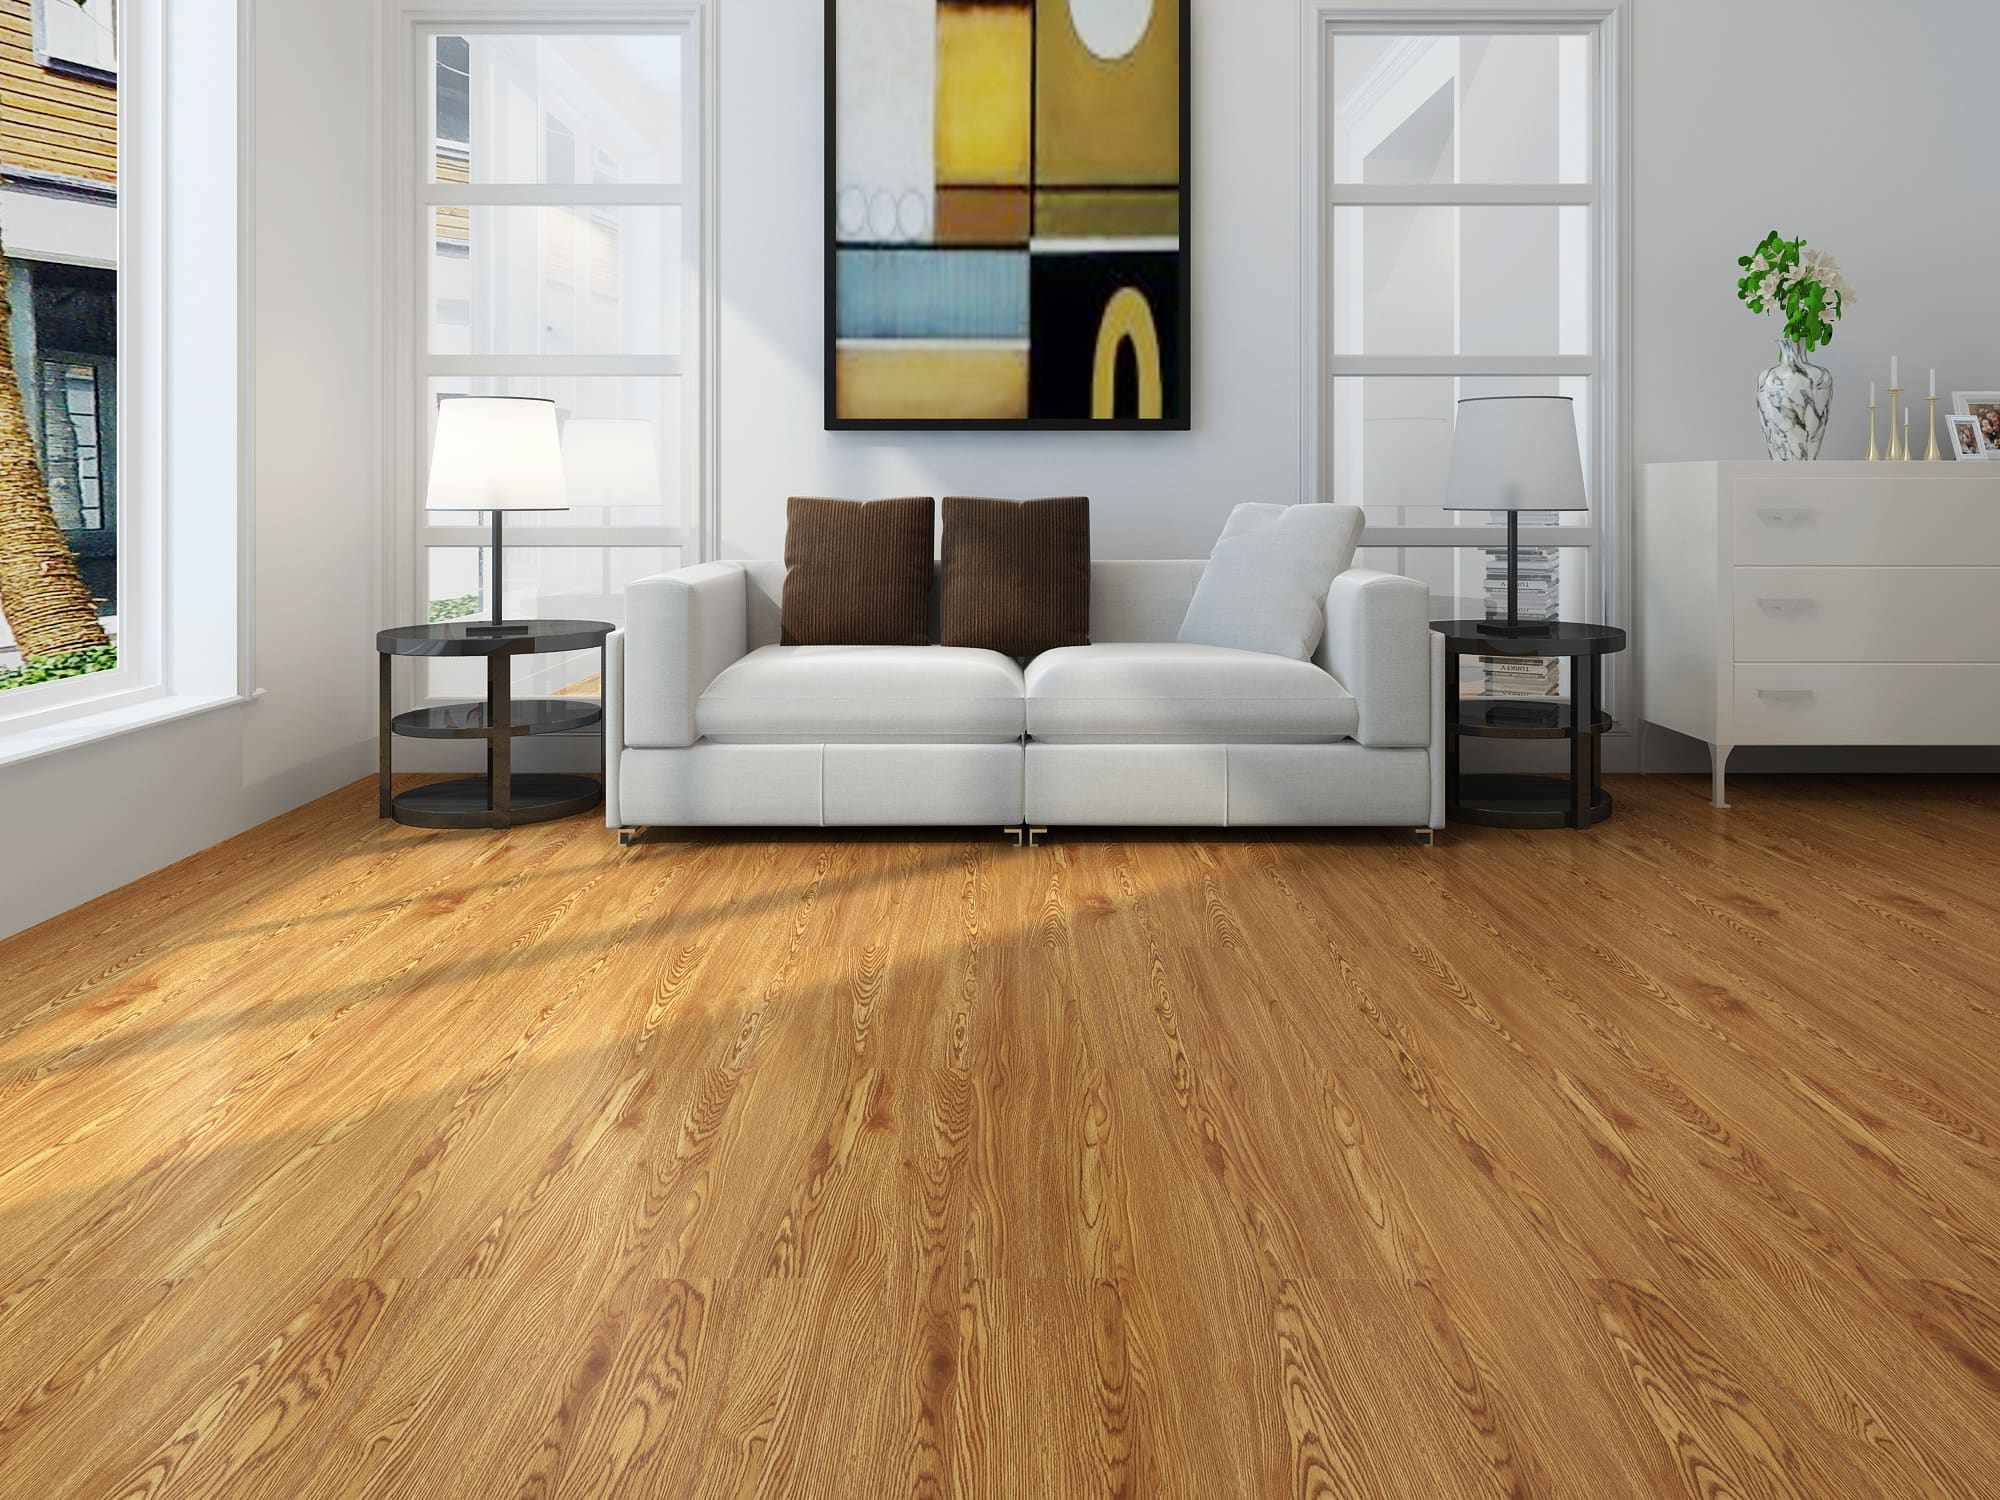 Top Reasons to Install Vinyl Floors